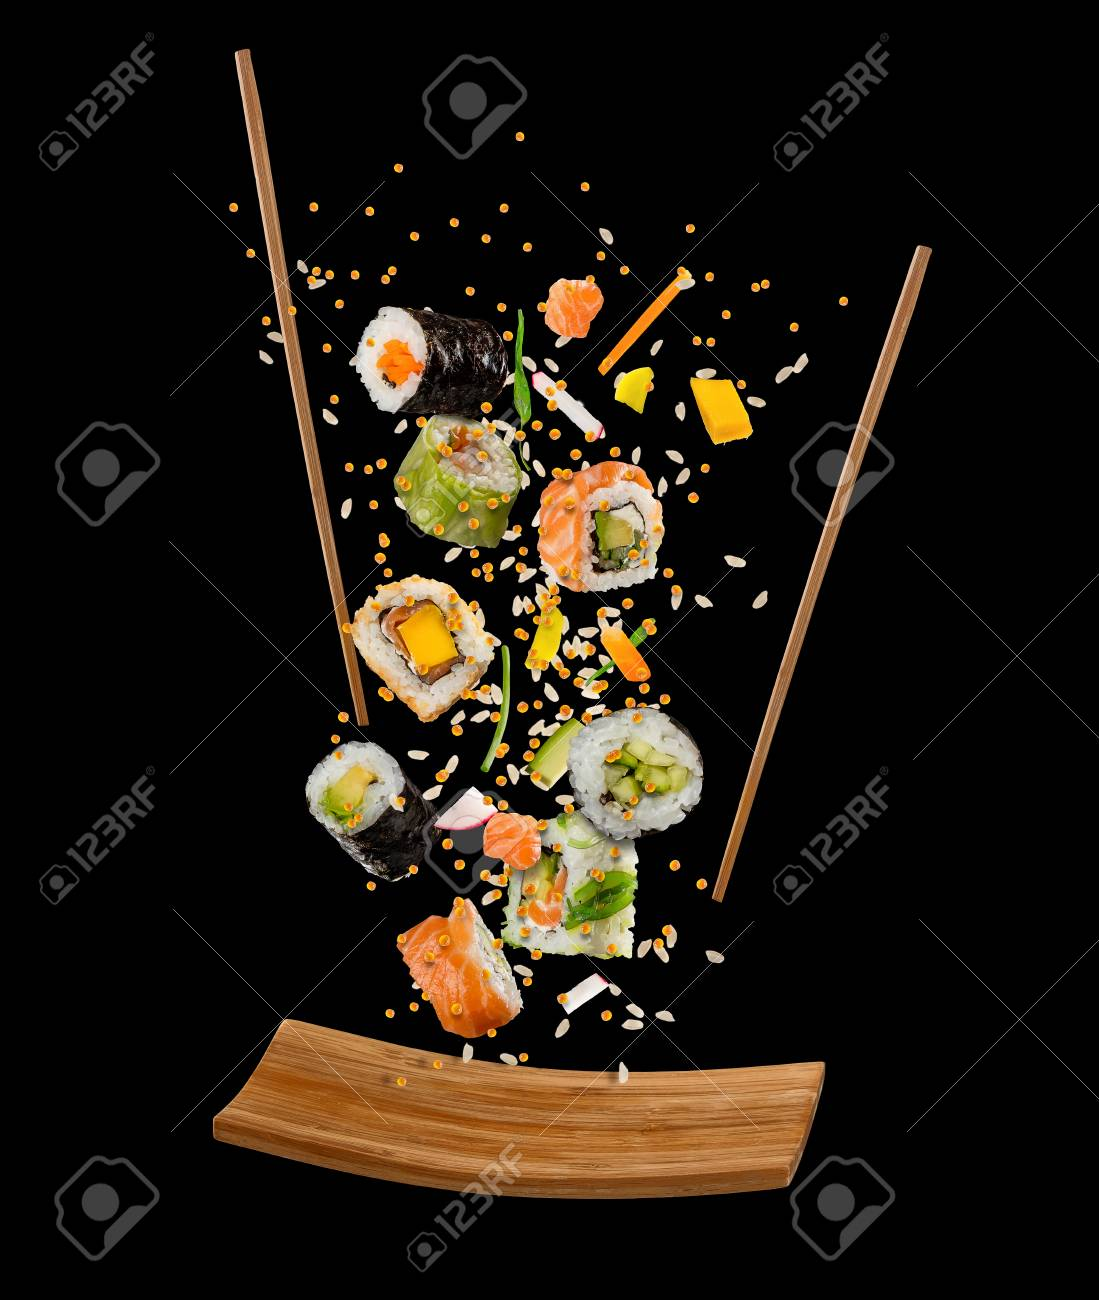 Flying Pieces Of Sushi With Wooden Chopsticks And Plate Isolated